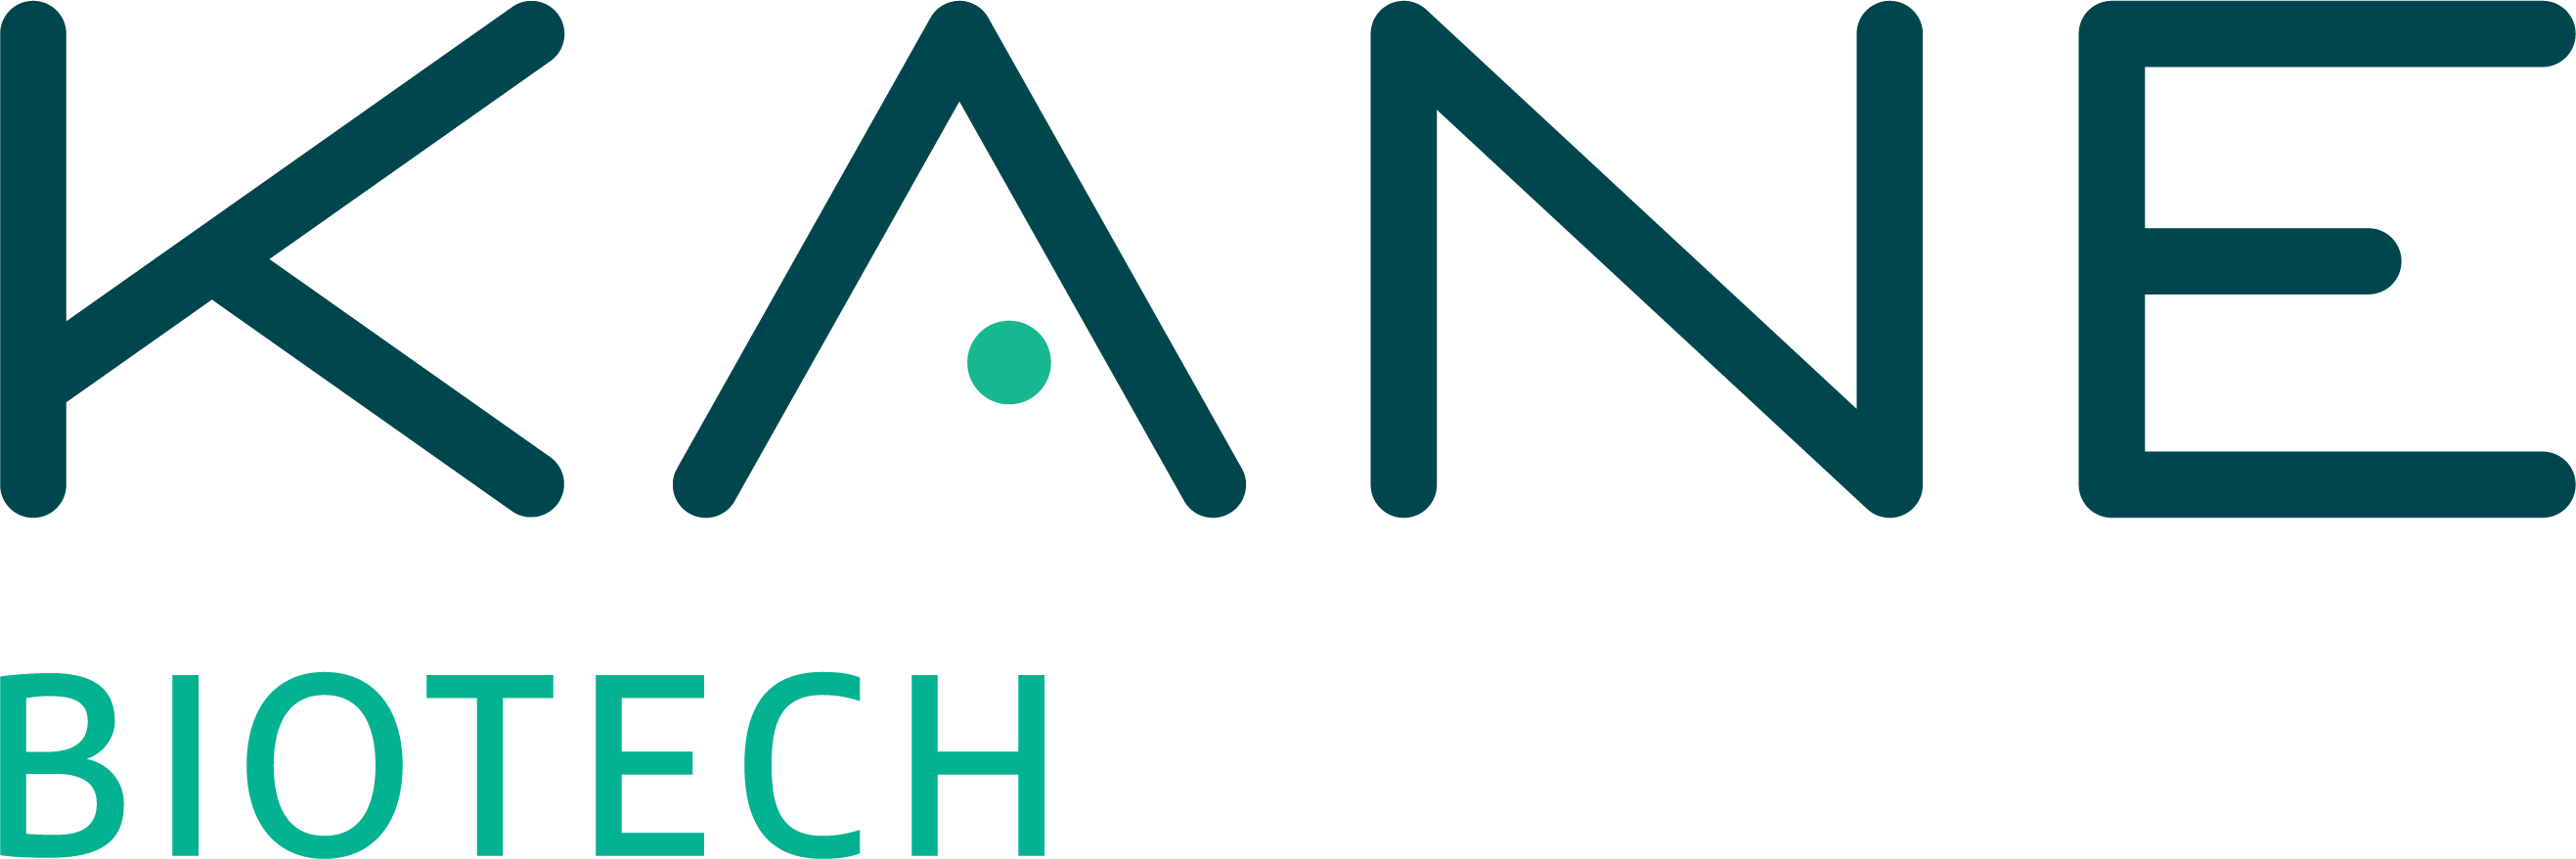 Kane Biotech Provides Update on Previously Announced Private Placement